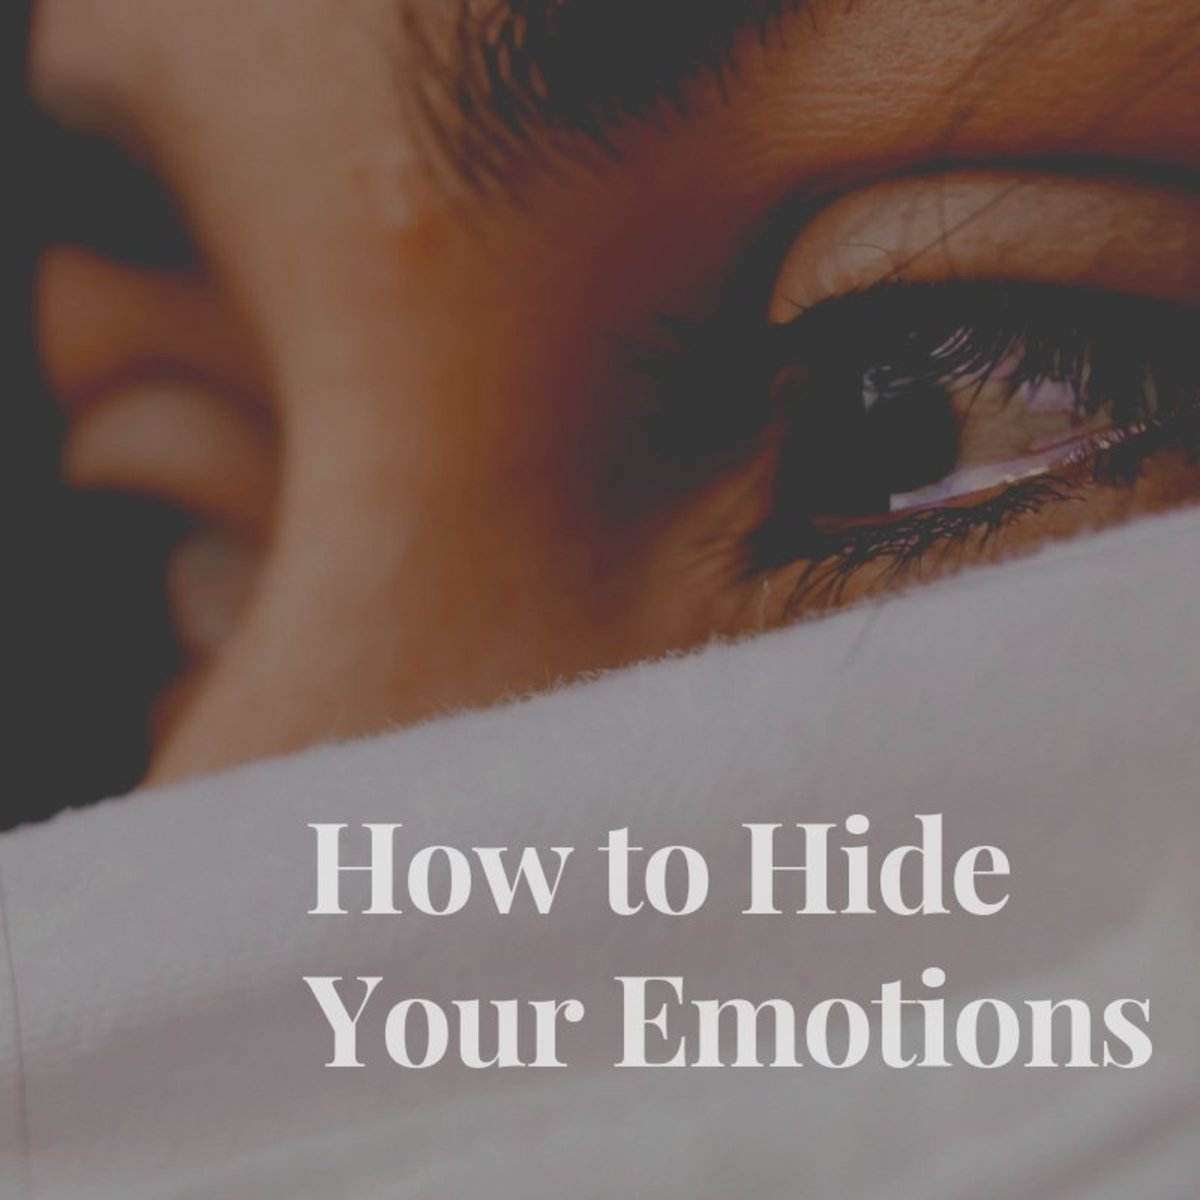 How to Hide Your Emotions–Don't Let Others Know What You're Thinking